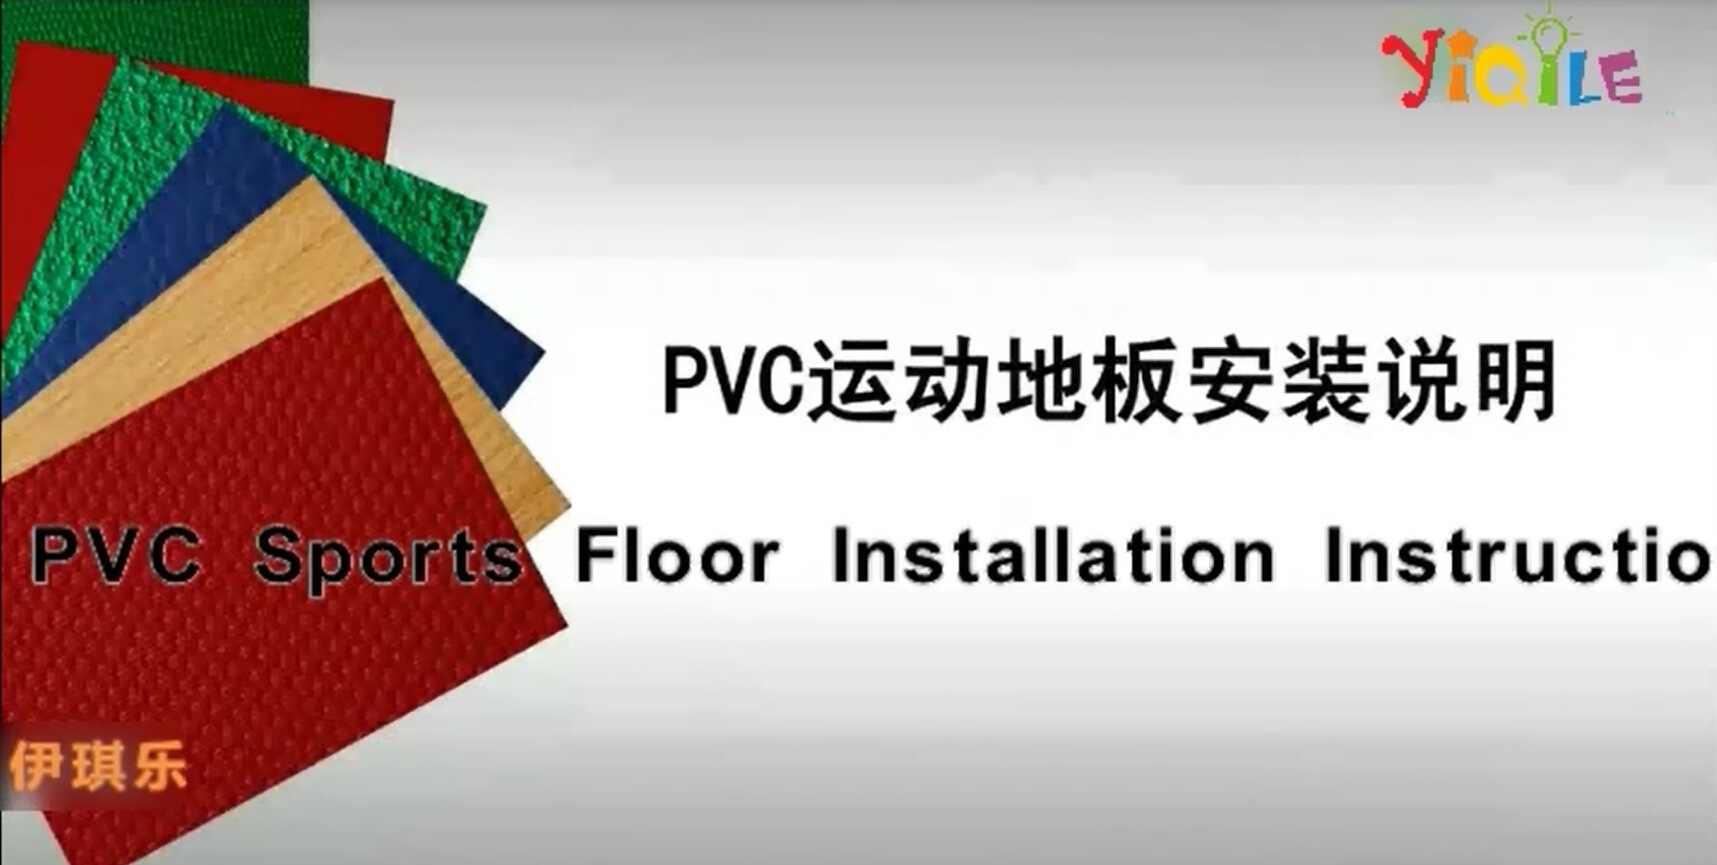 PVC Floor Installation